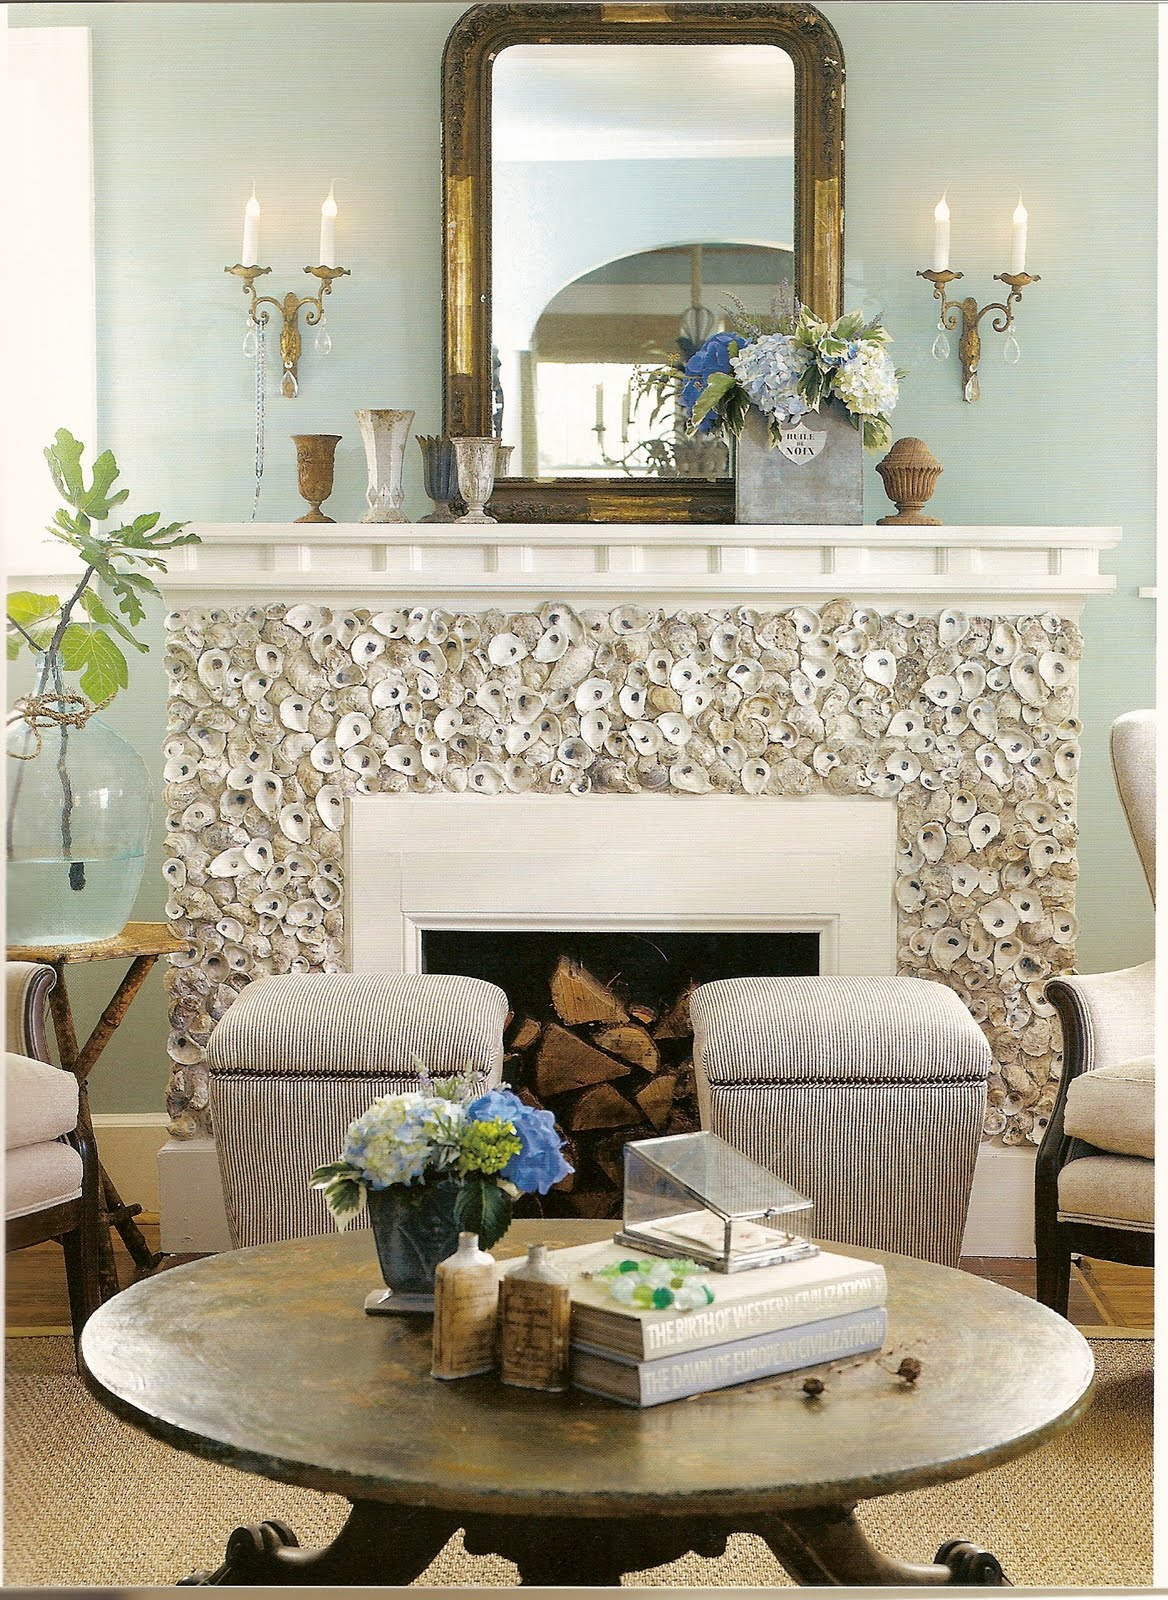 A Flair For Vintage Decor Oyster Shells And Decor